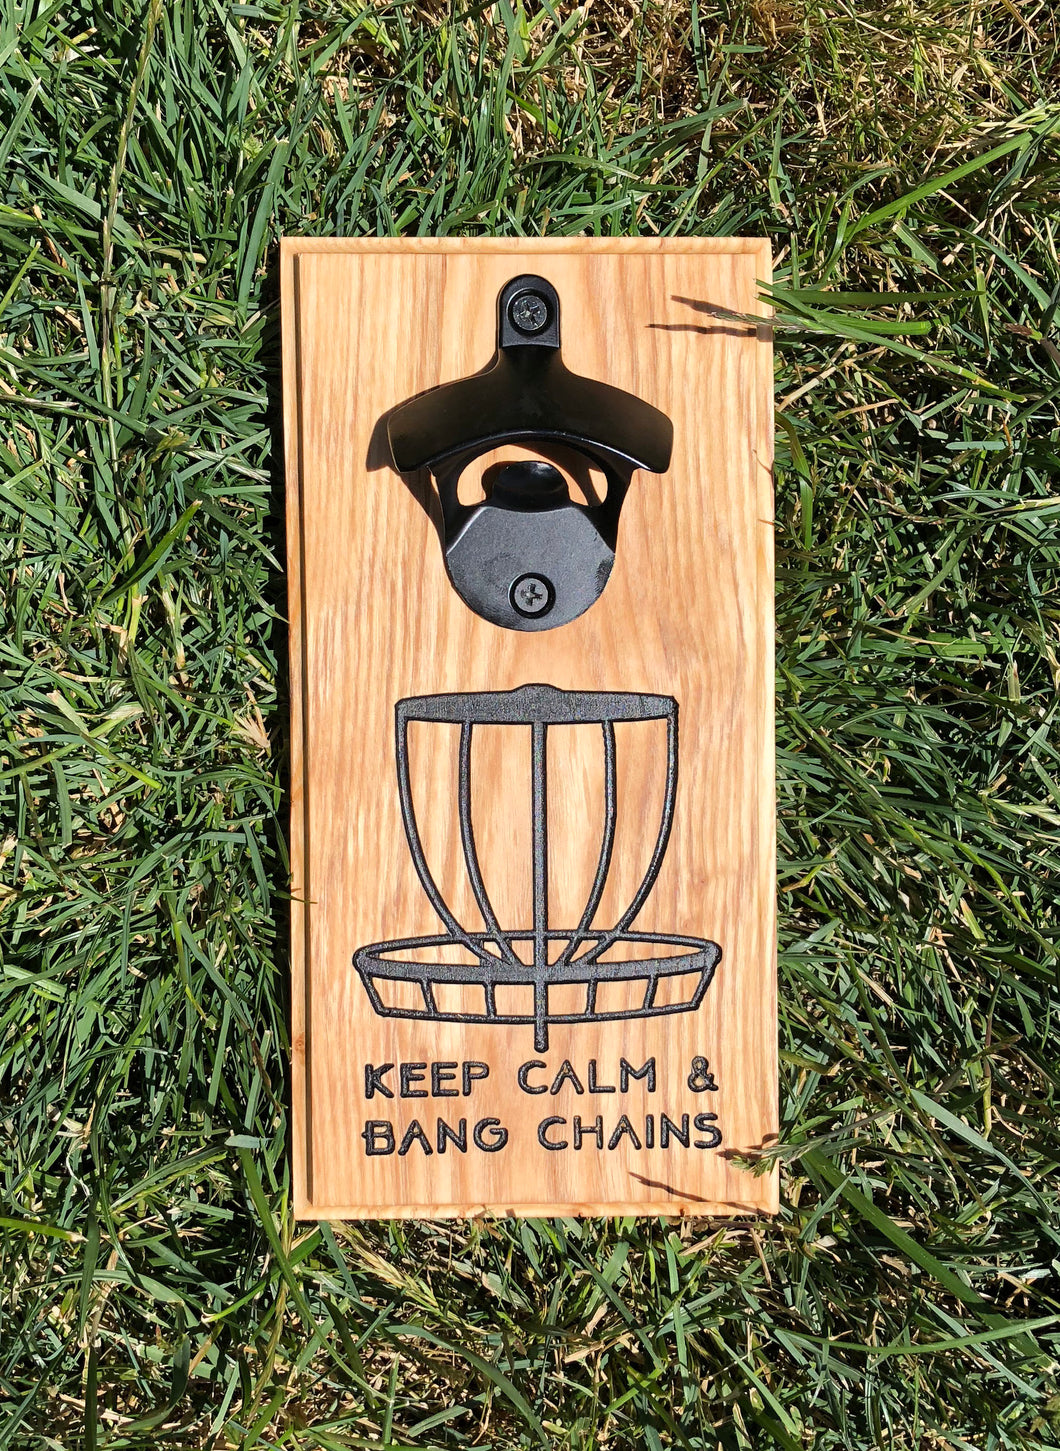 Magnetic Bottle Opener: Keep Calm Disc Golf Basket